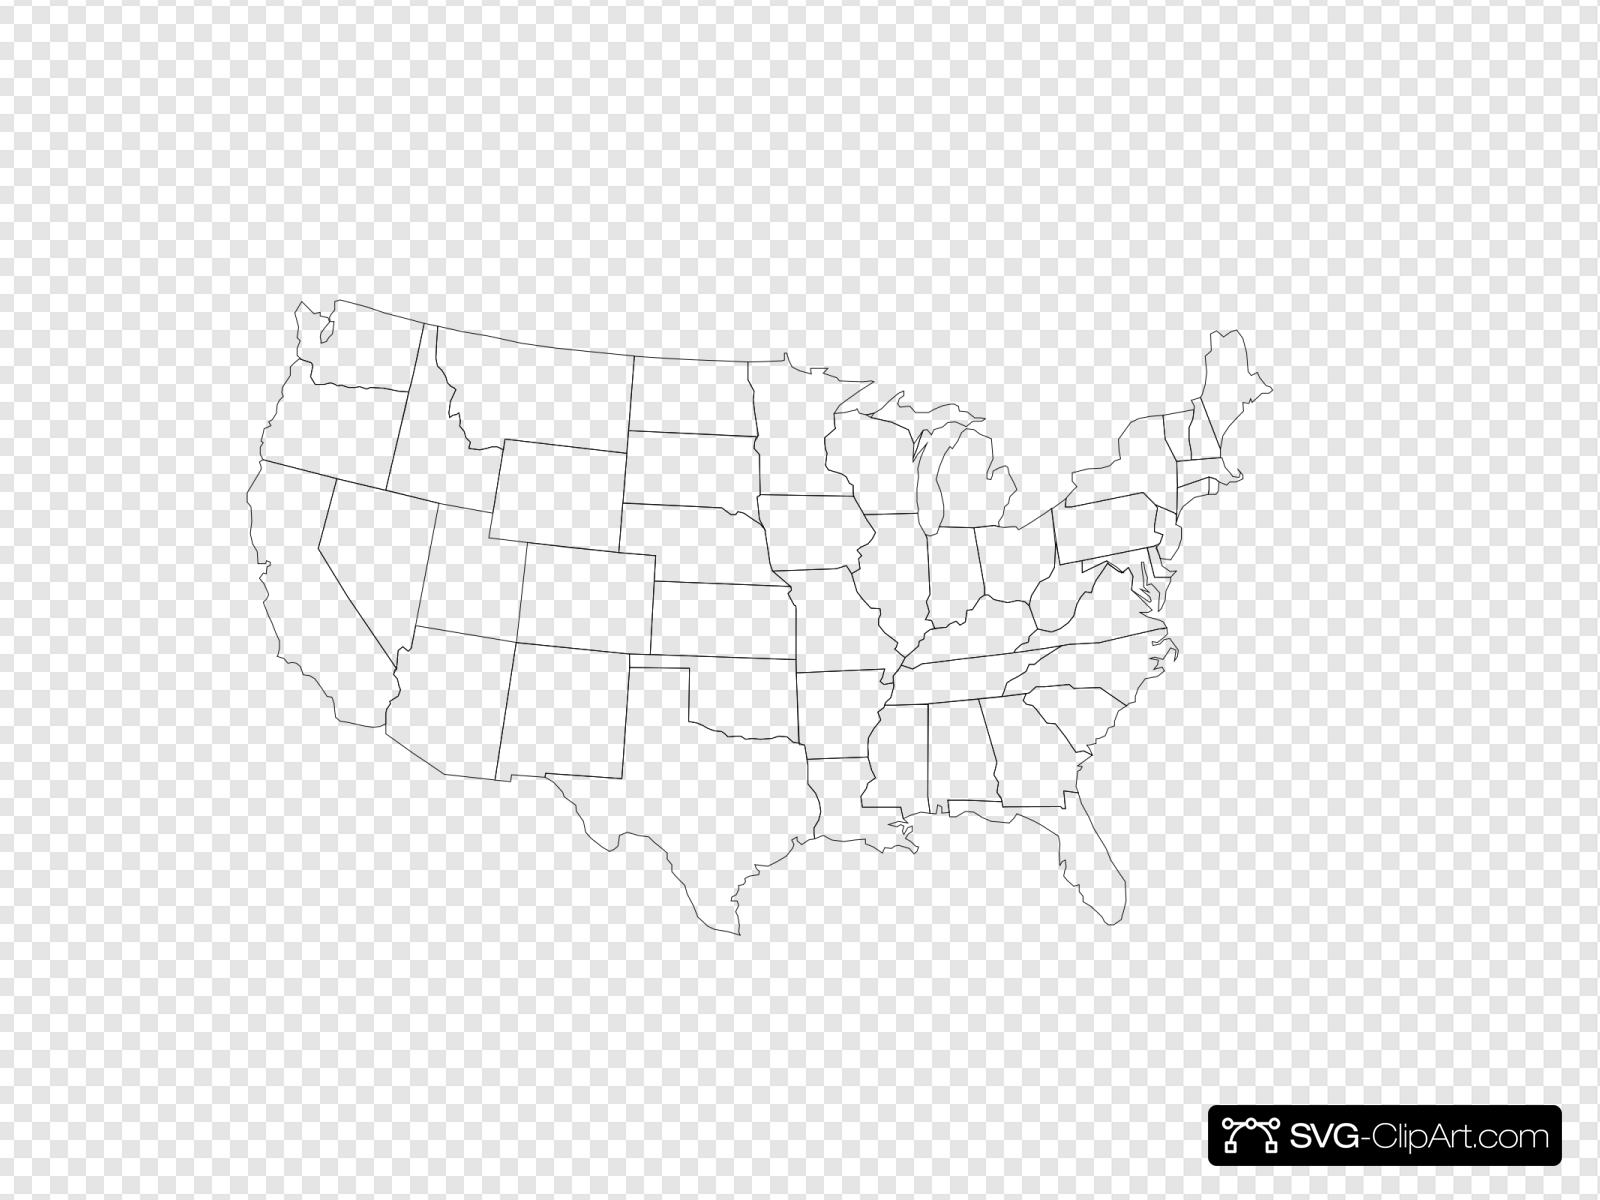 Blank Us Map Clip art, Icon and SVG - SVG Clipart